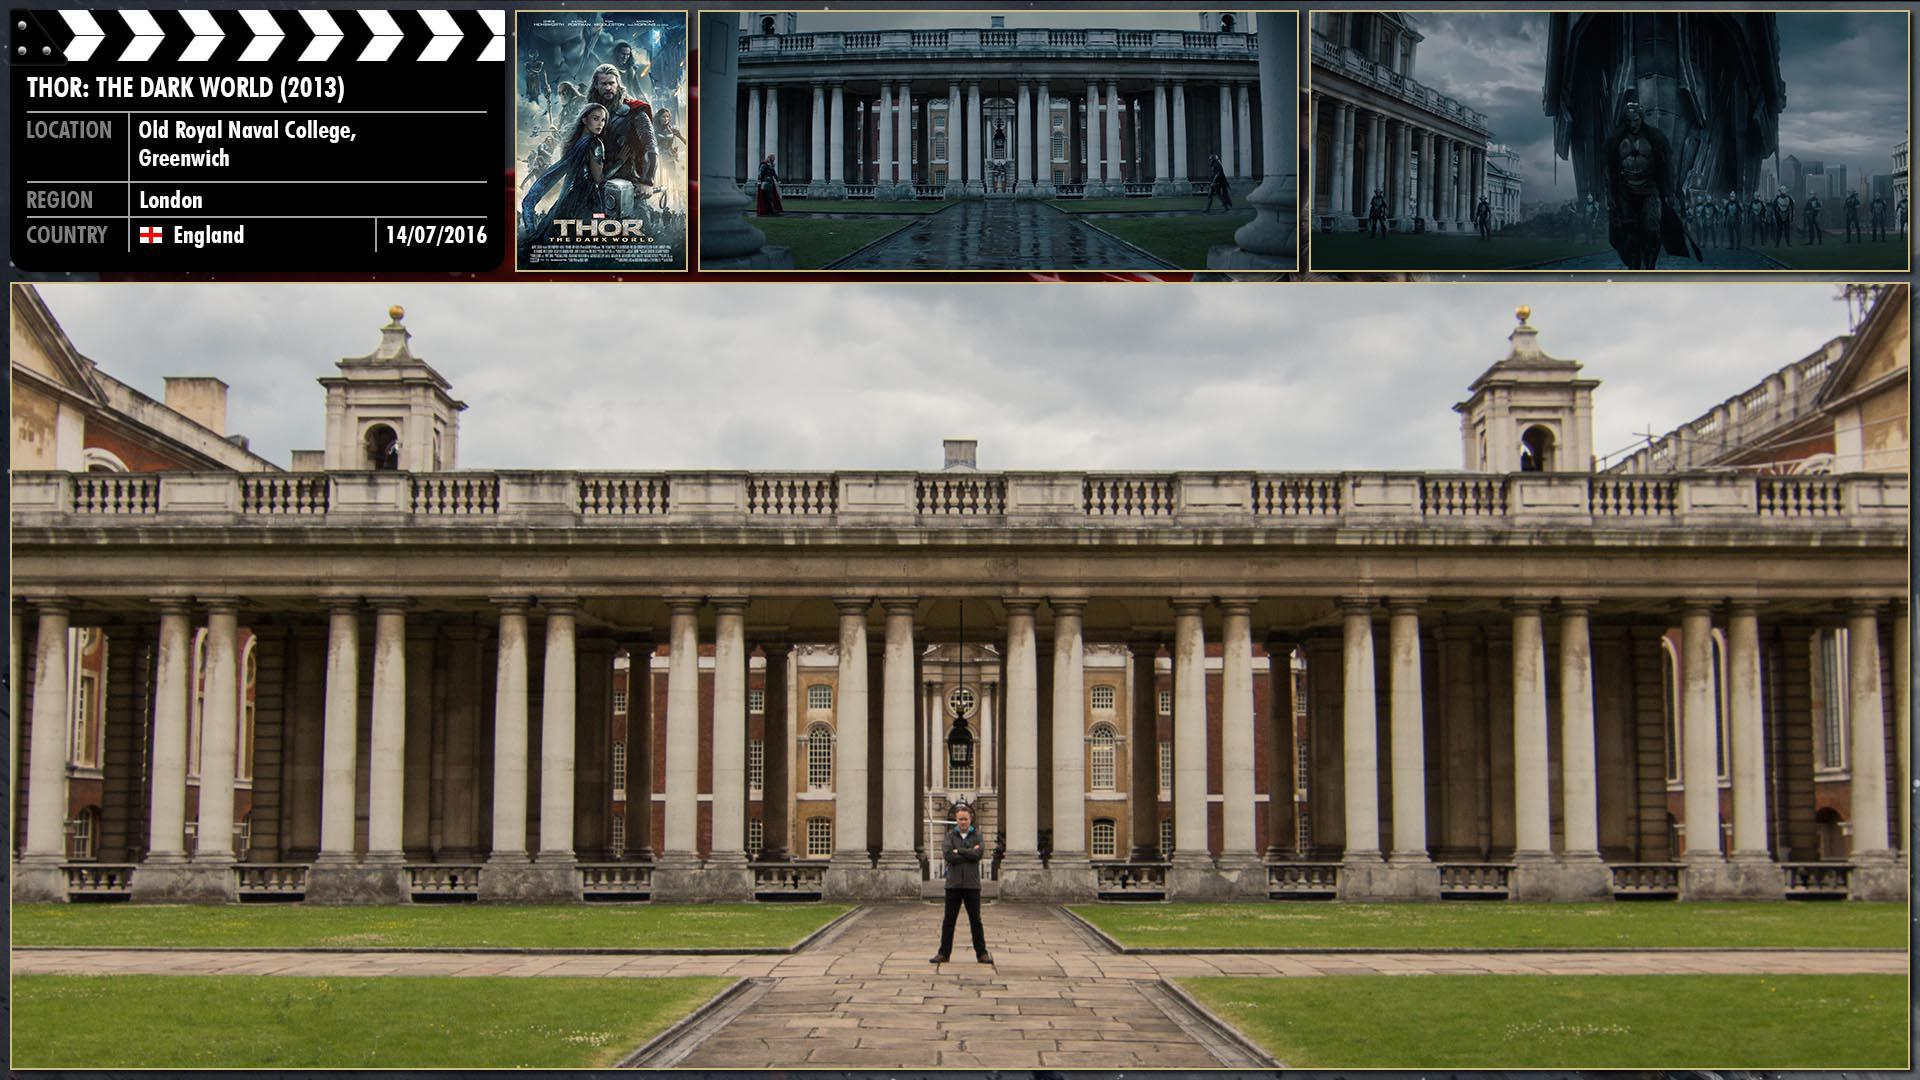 Filming location photo for Thor: The Dark World (2013) 1 of 2